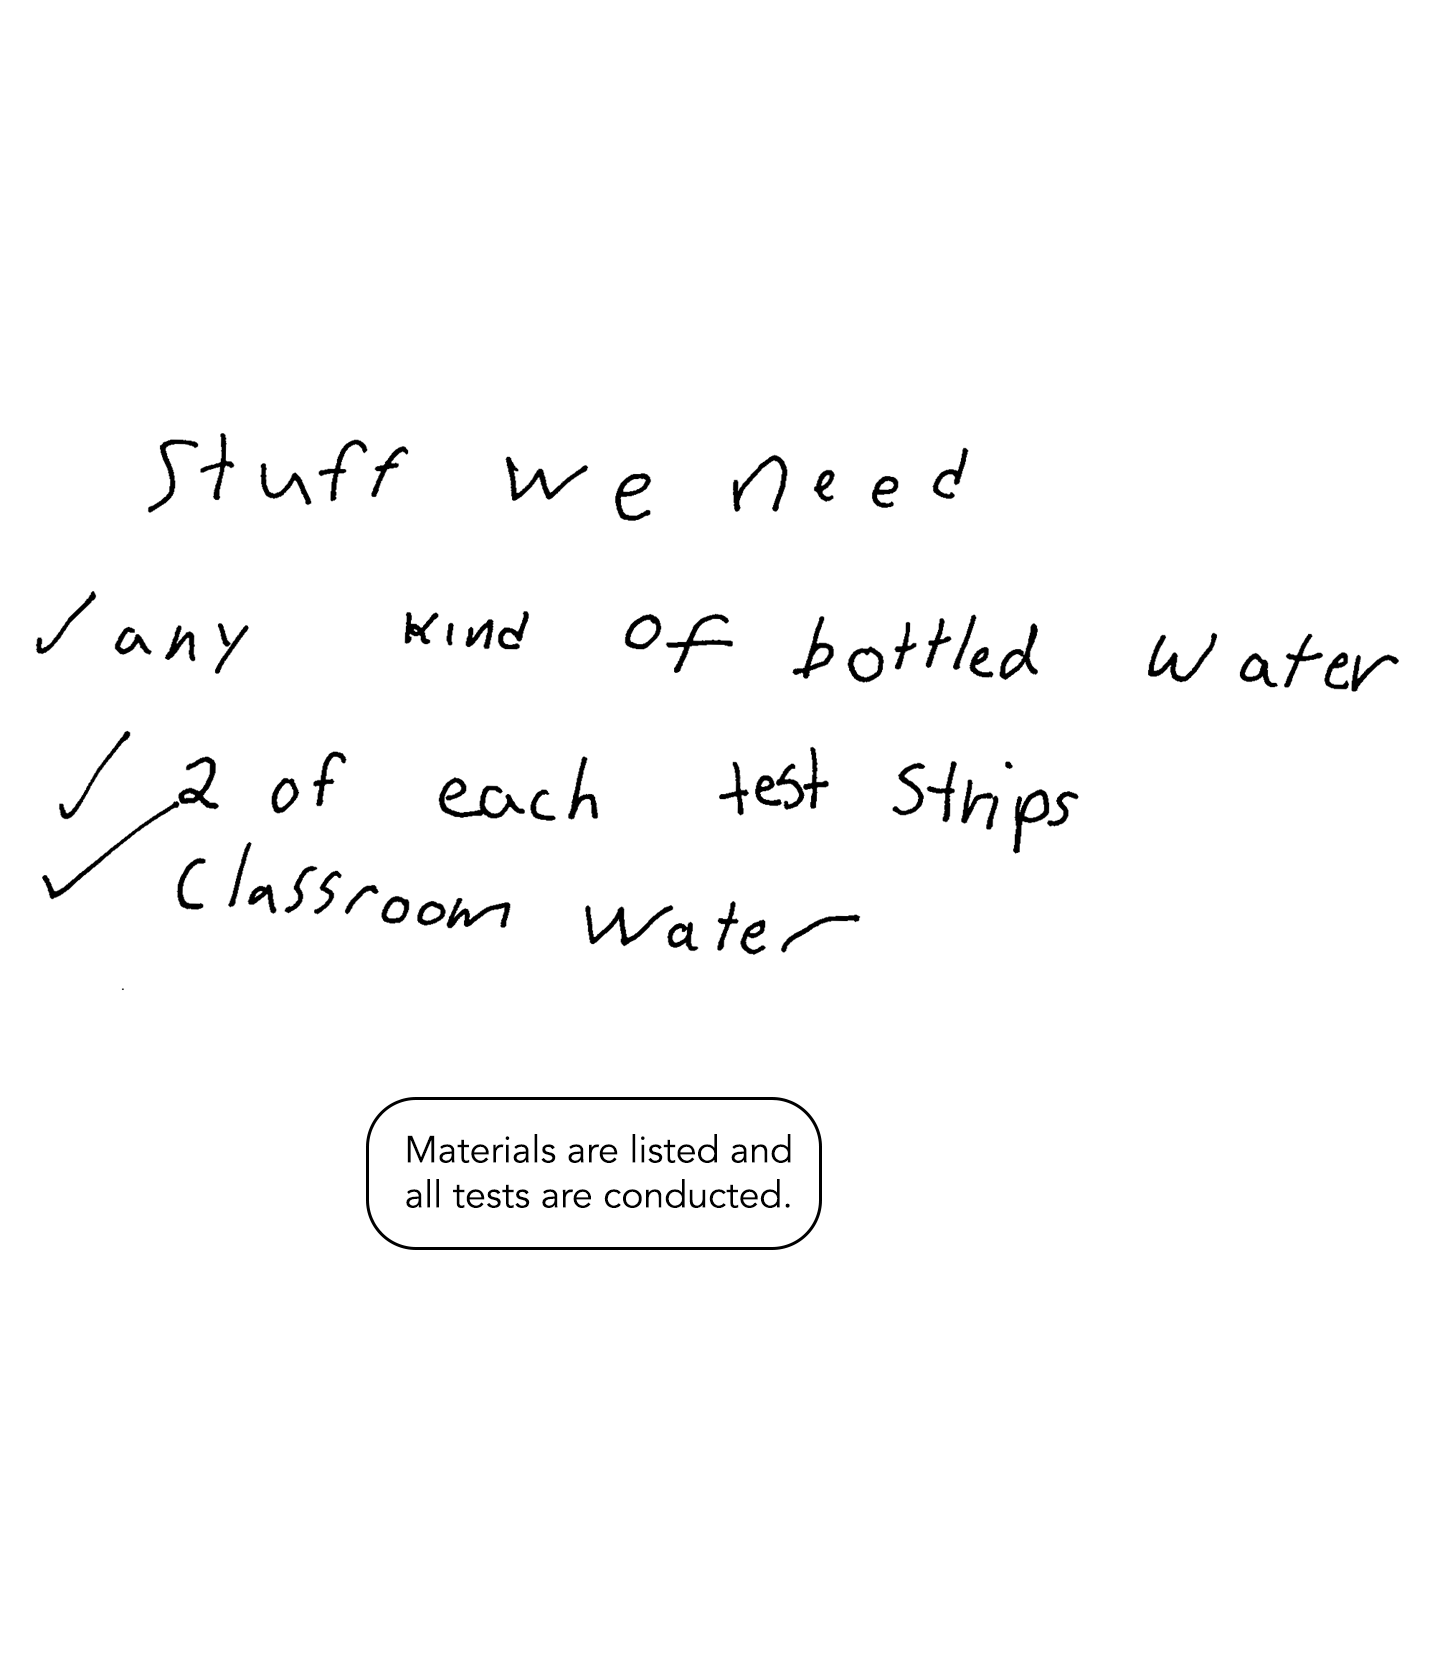 water_testing_what_makes_water_good_apprentice_2.png